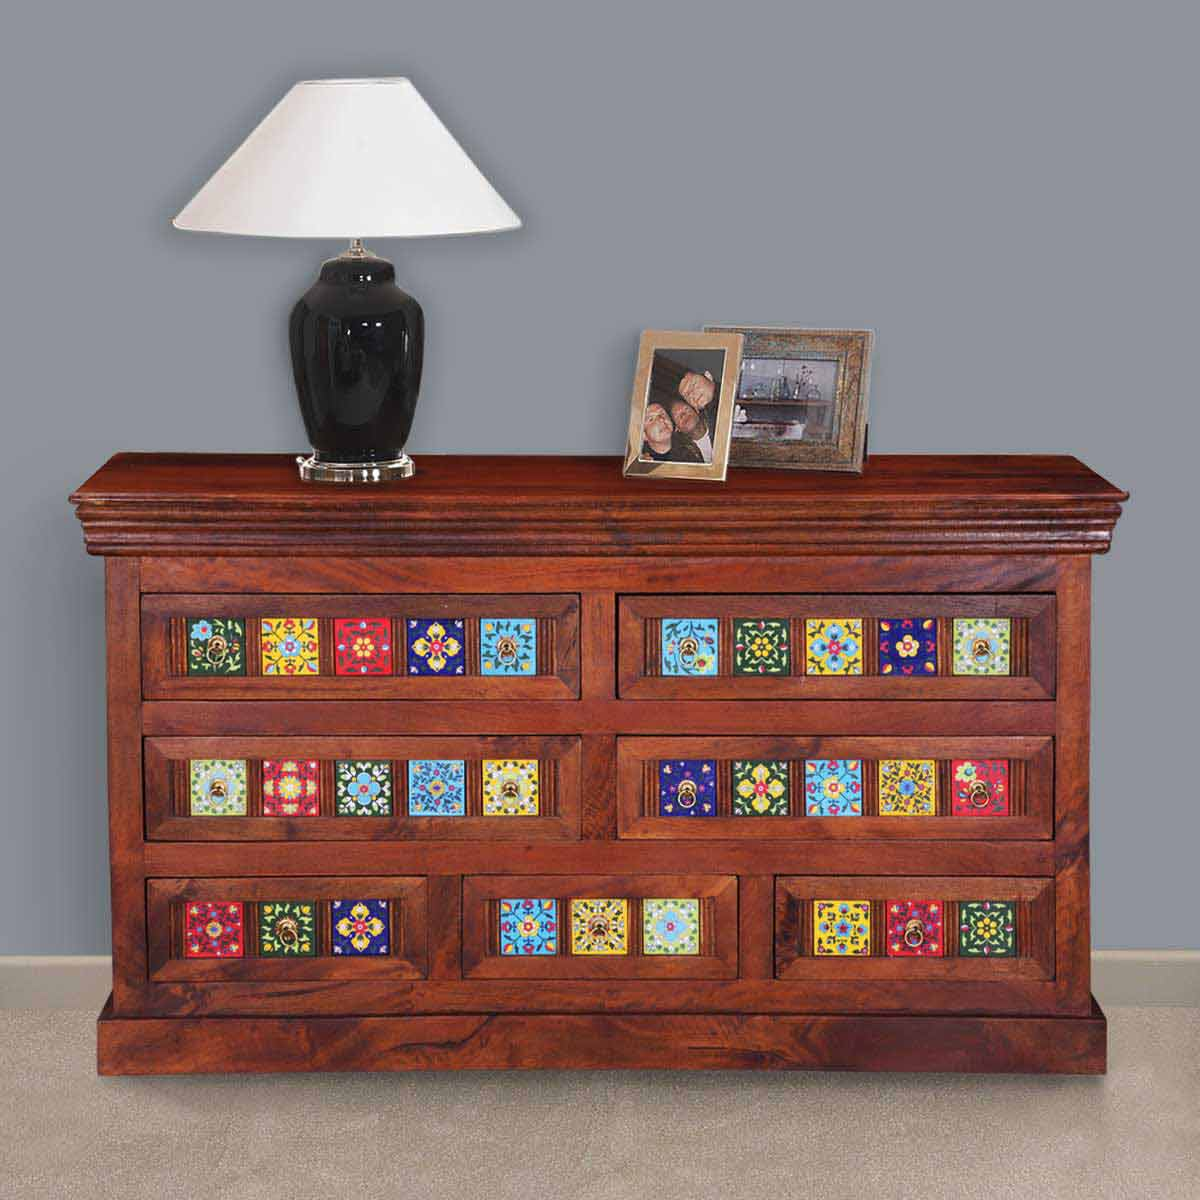 hugo drawer hoby products pelham digital hh horizontal five dresser